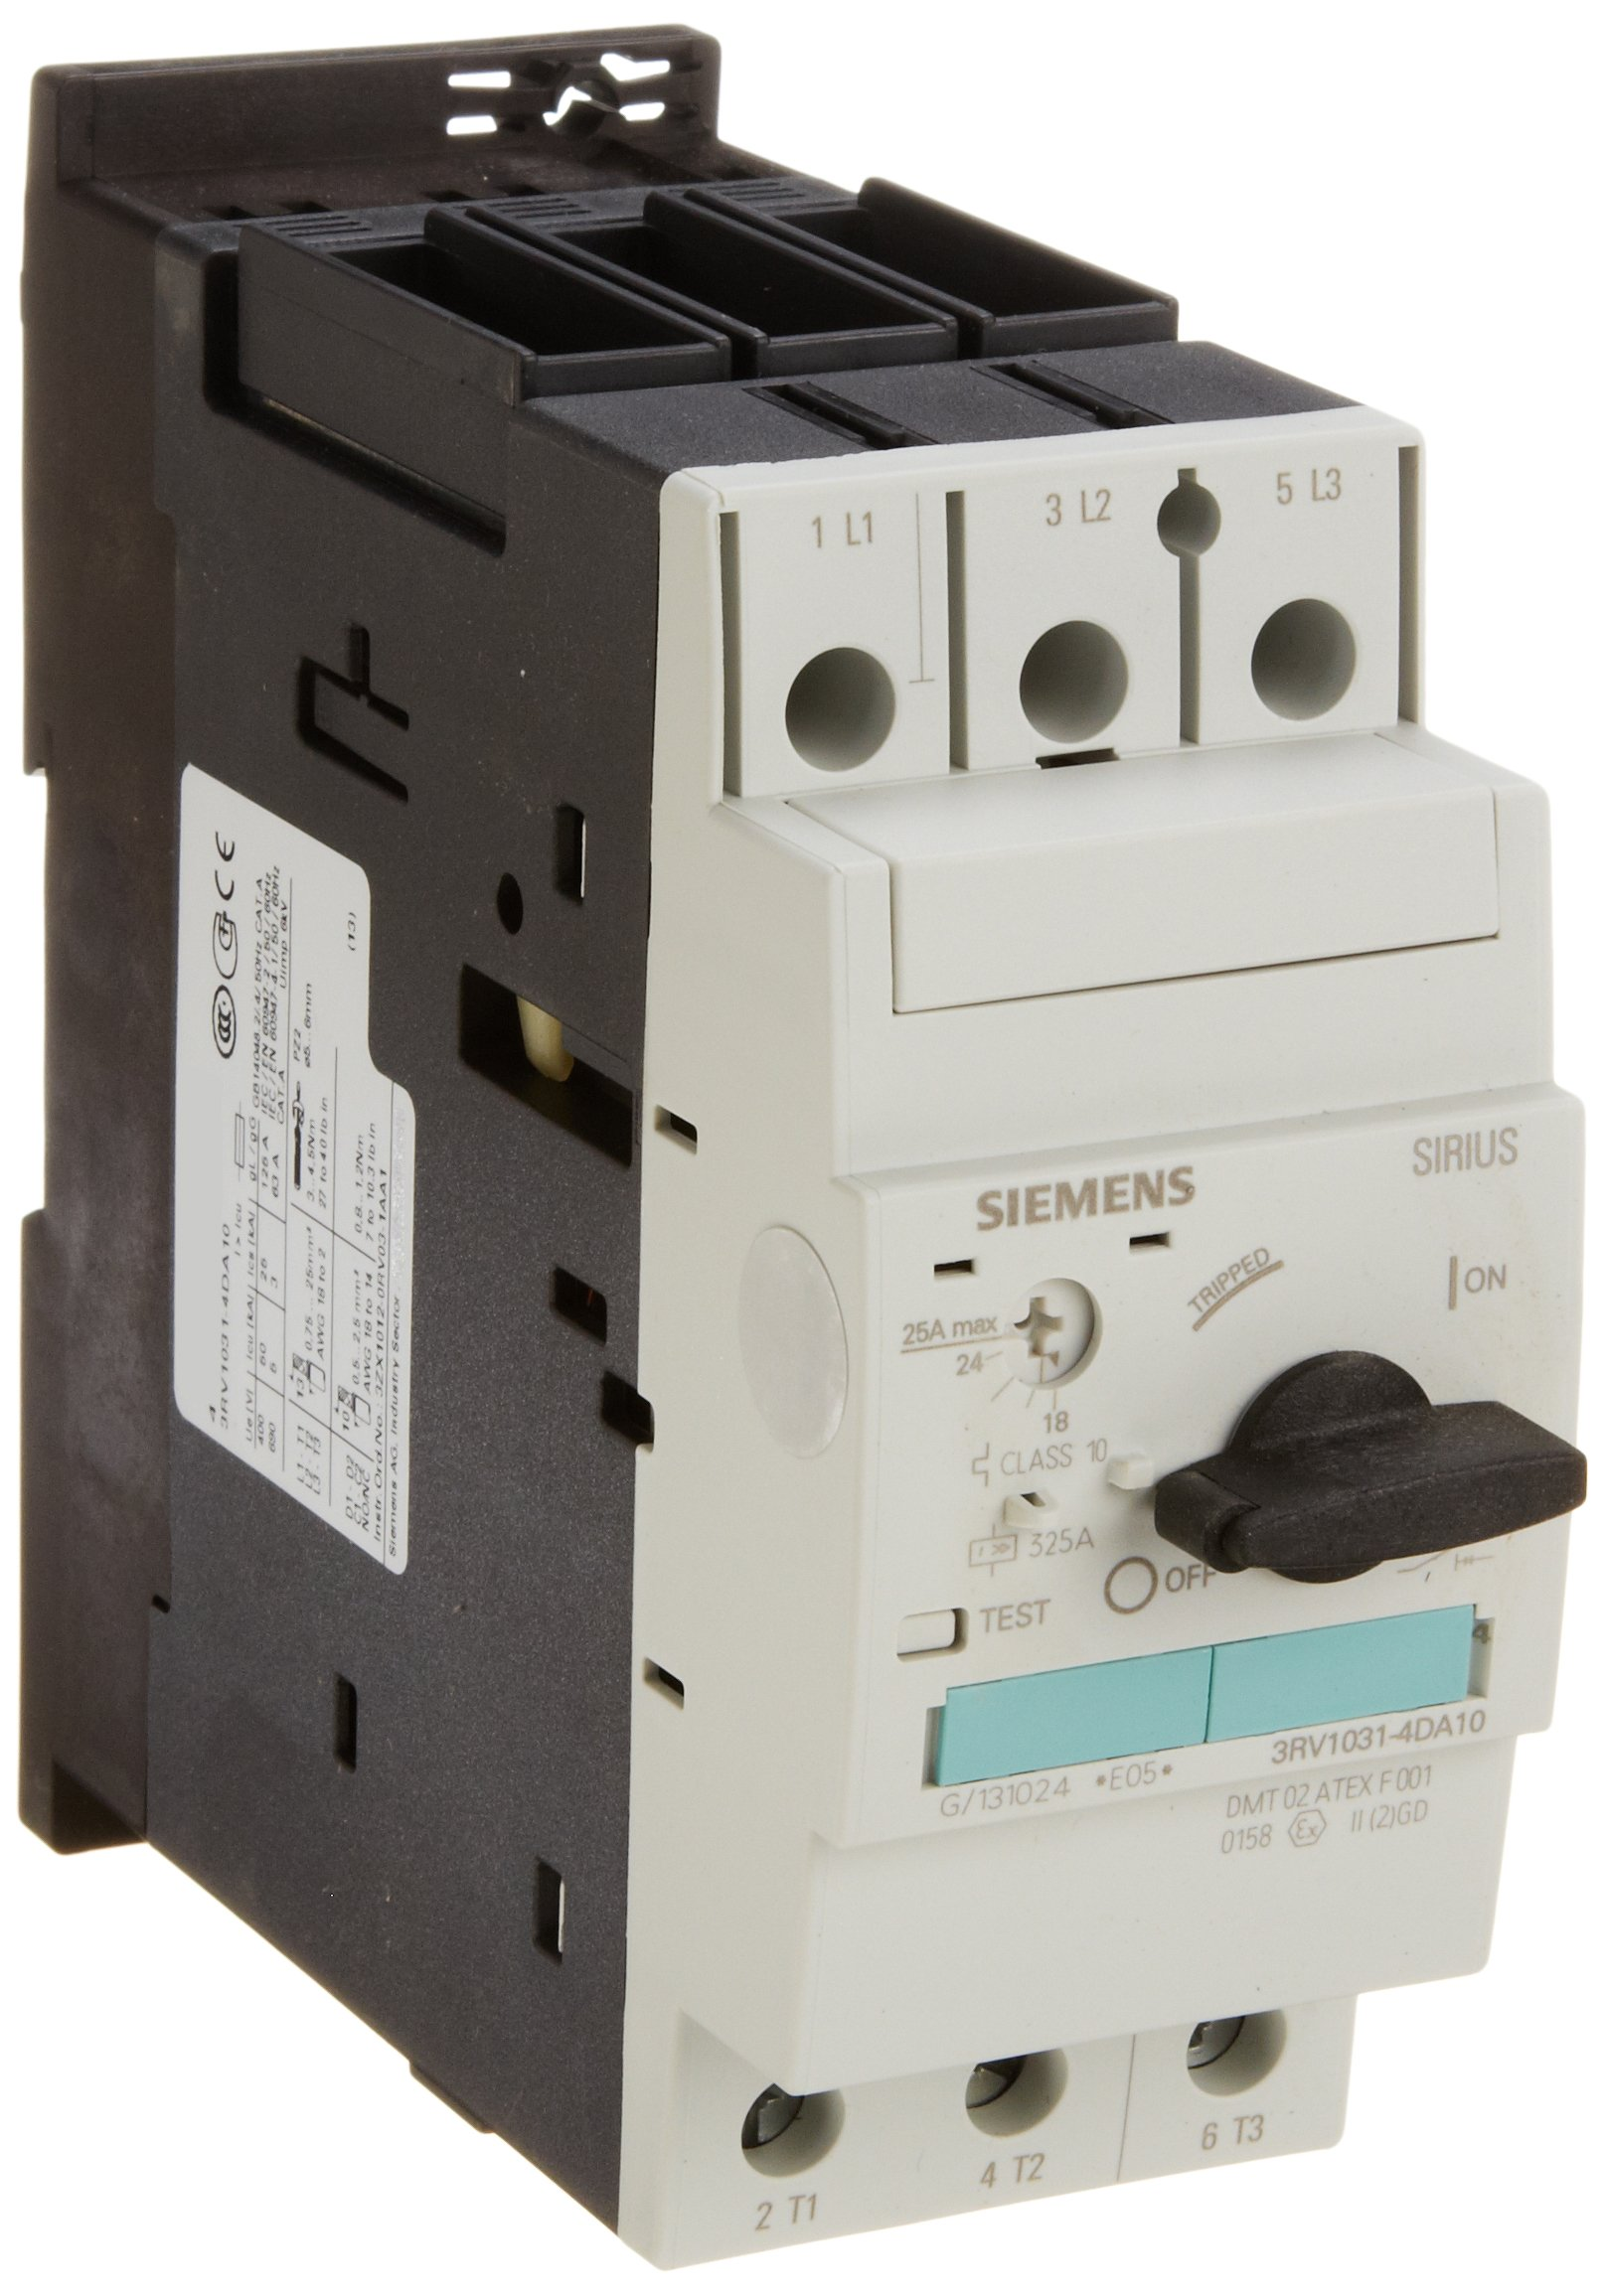 Siemens 3RV1031-4DA10 Motor Starter Protector, Screw Connection, 3RV103 Frame Size, 18-25 FLA Adjustment Range, 325A Instantaneous Short Circuit Release, 65kA UL Short Circuit Breaking Capacity at 480VAC